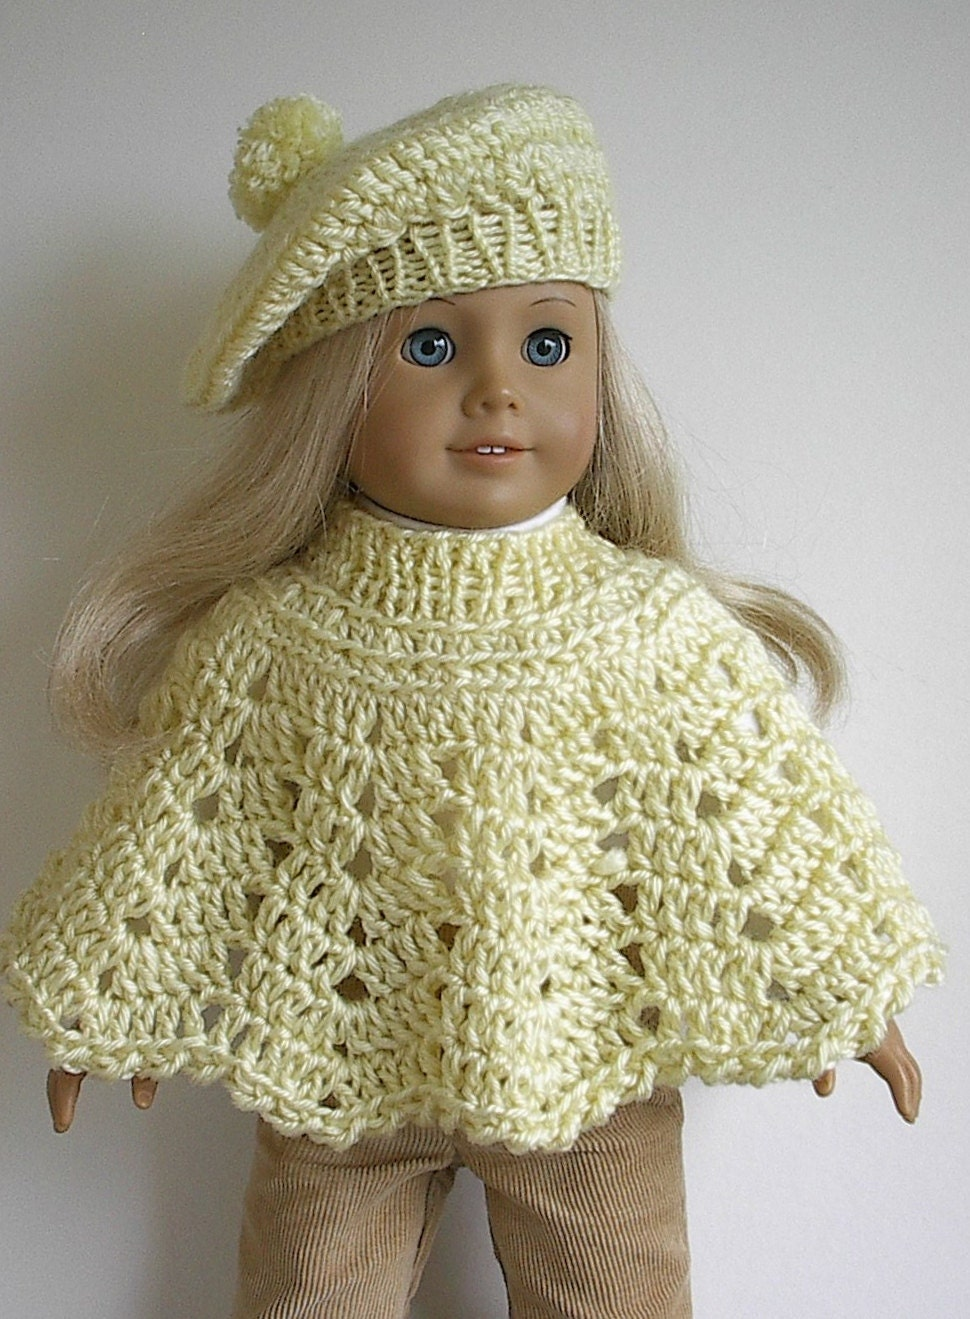 Crochet Amigurumi Pattern Hello Kitty Strawberry Hoolaloop : American Girl Doll Clothes: Crocheted Poncho and by ...